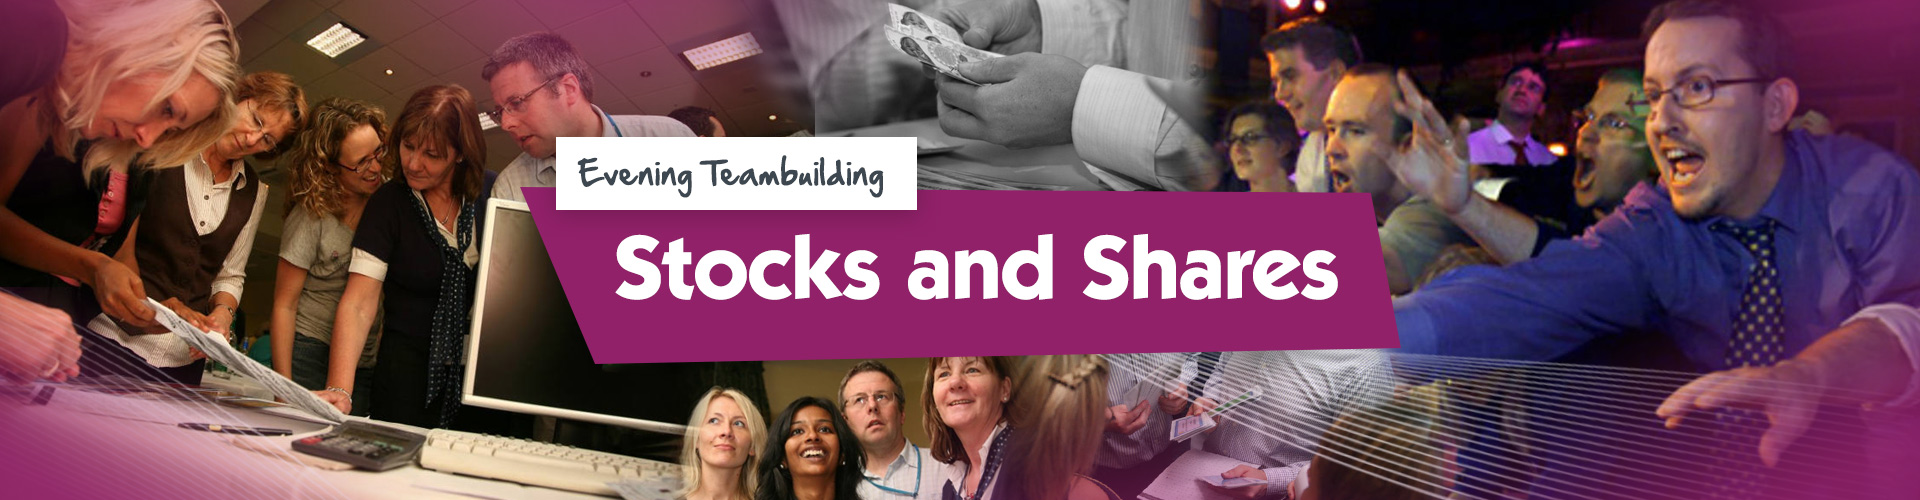 Teambuilding | Stocks and Shares